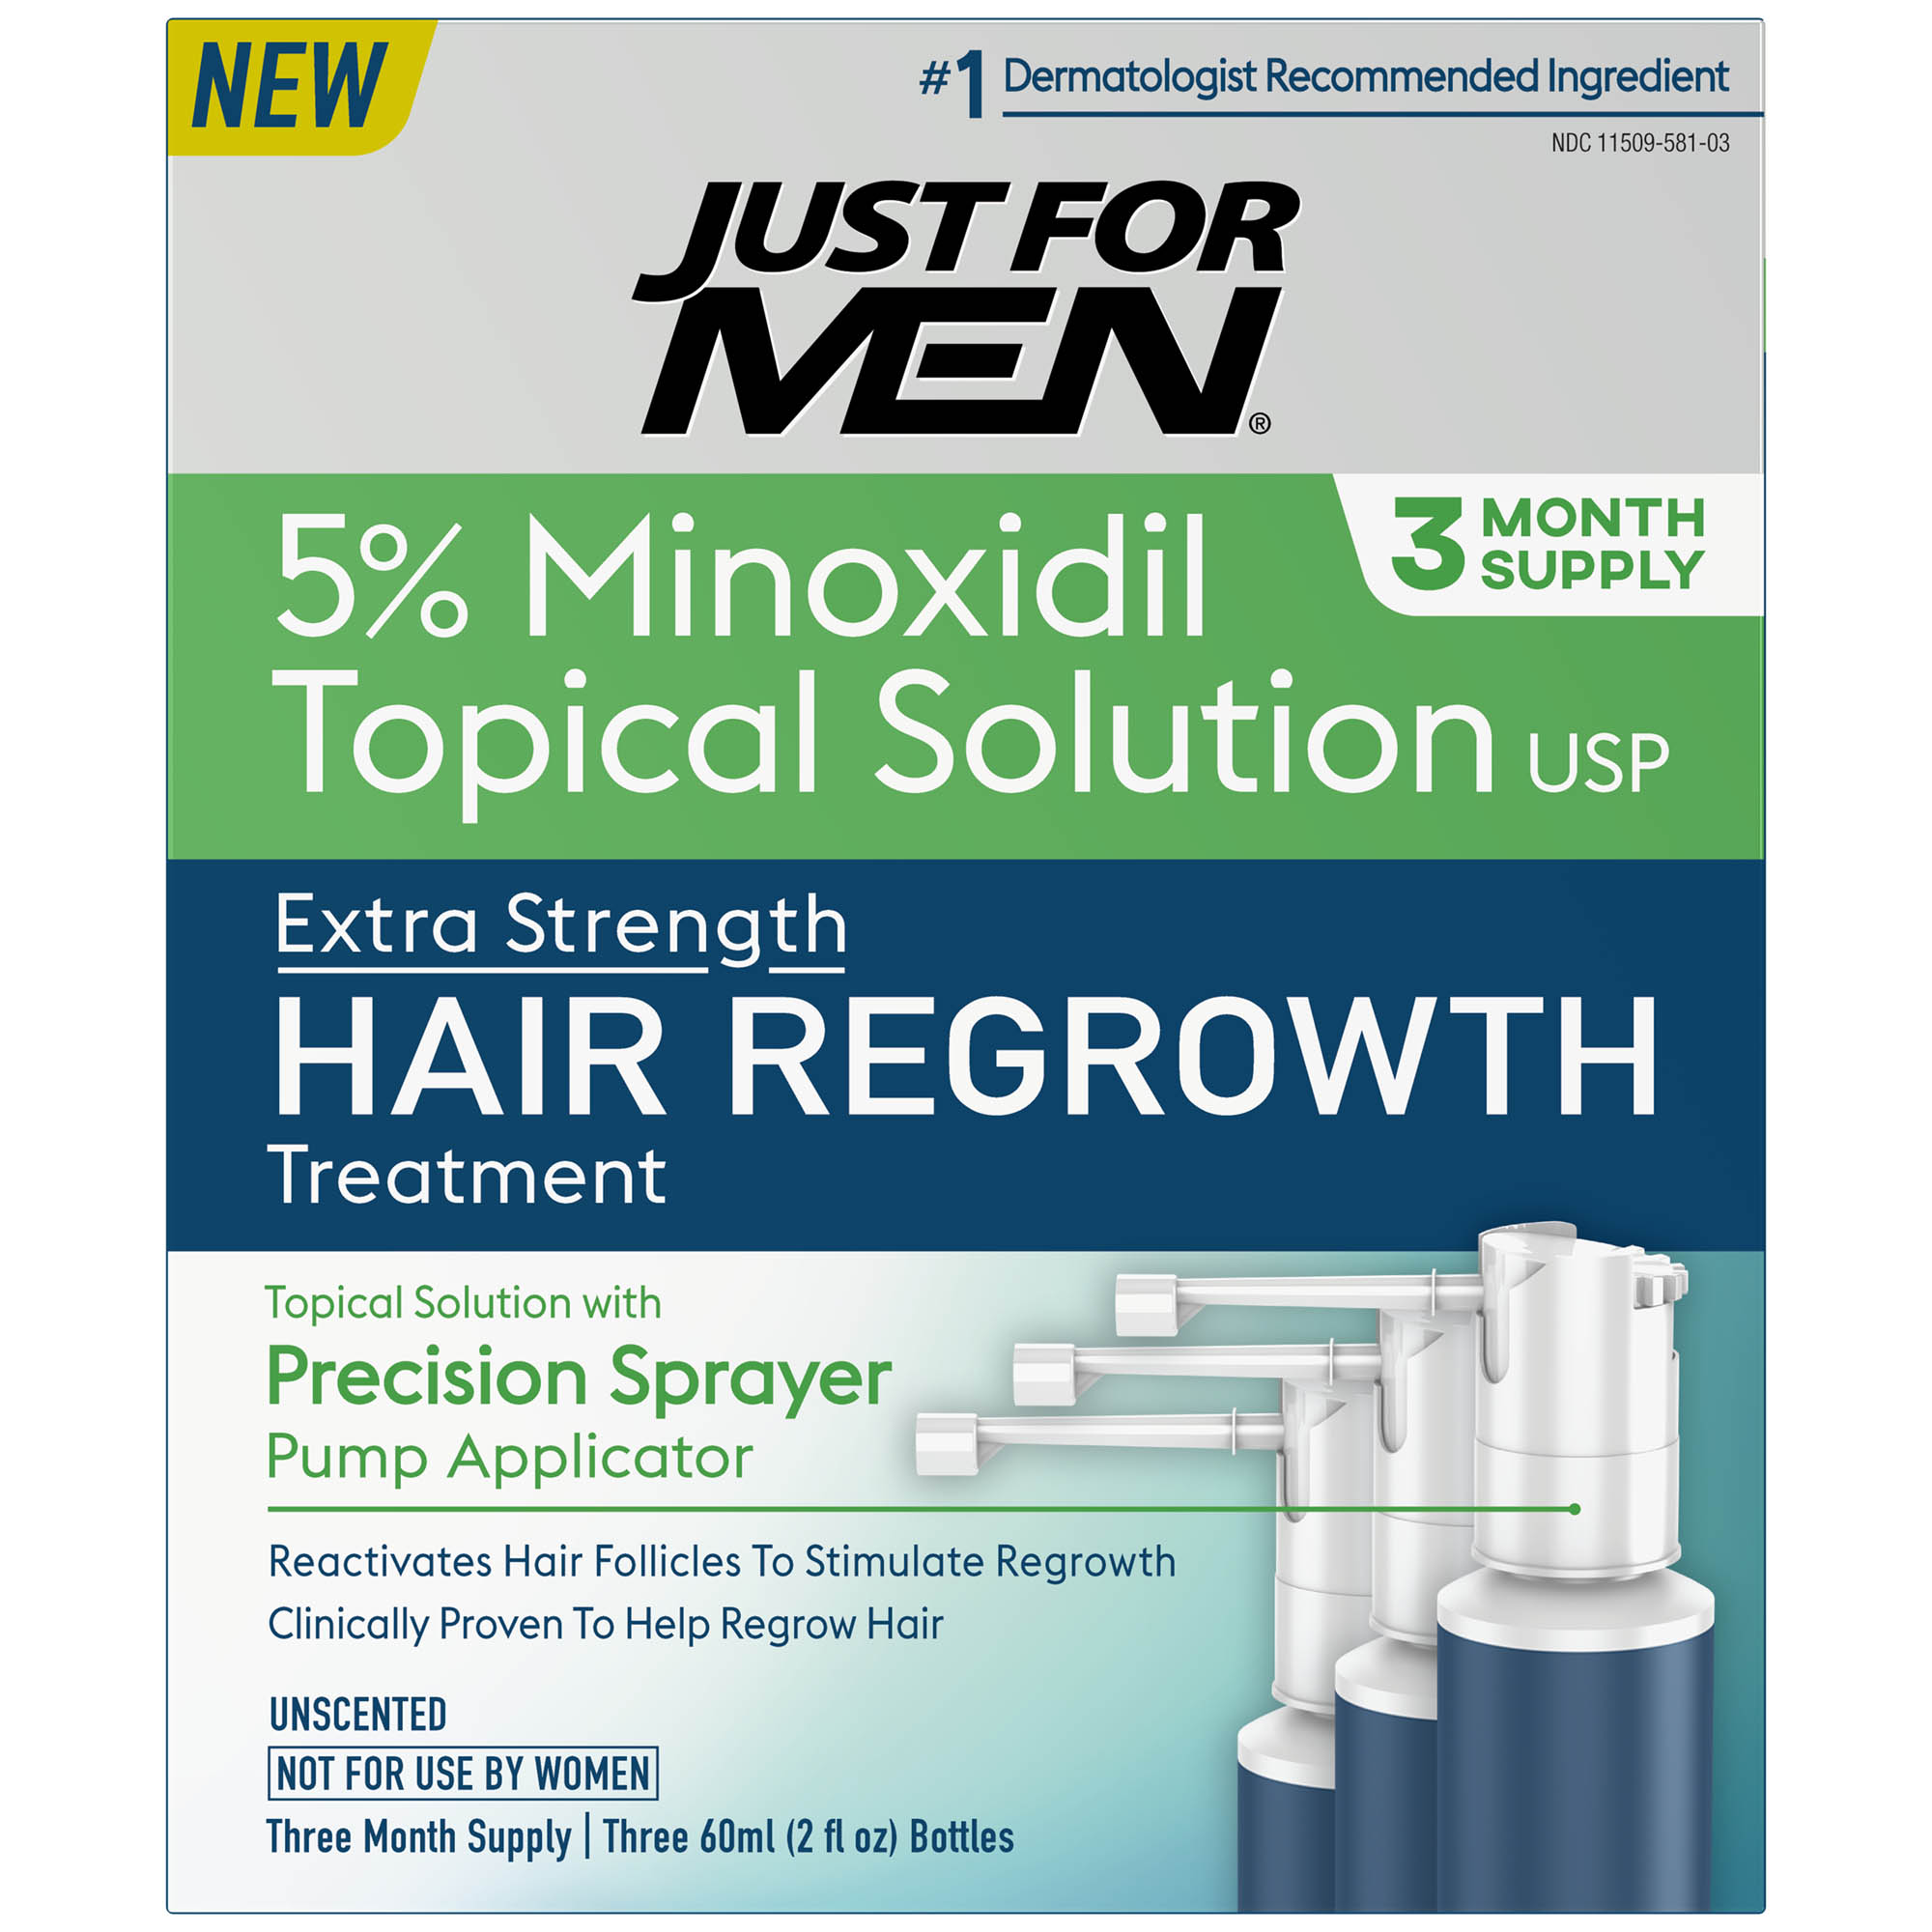 Just For Men Extra Strength Hair Regrowth Treatment, 5% Minoxidil Topical Solution USP, 3 Month Supply, 6 Fluid Ounce